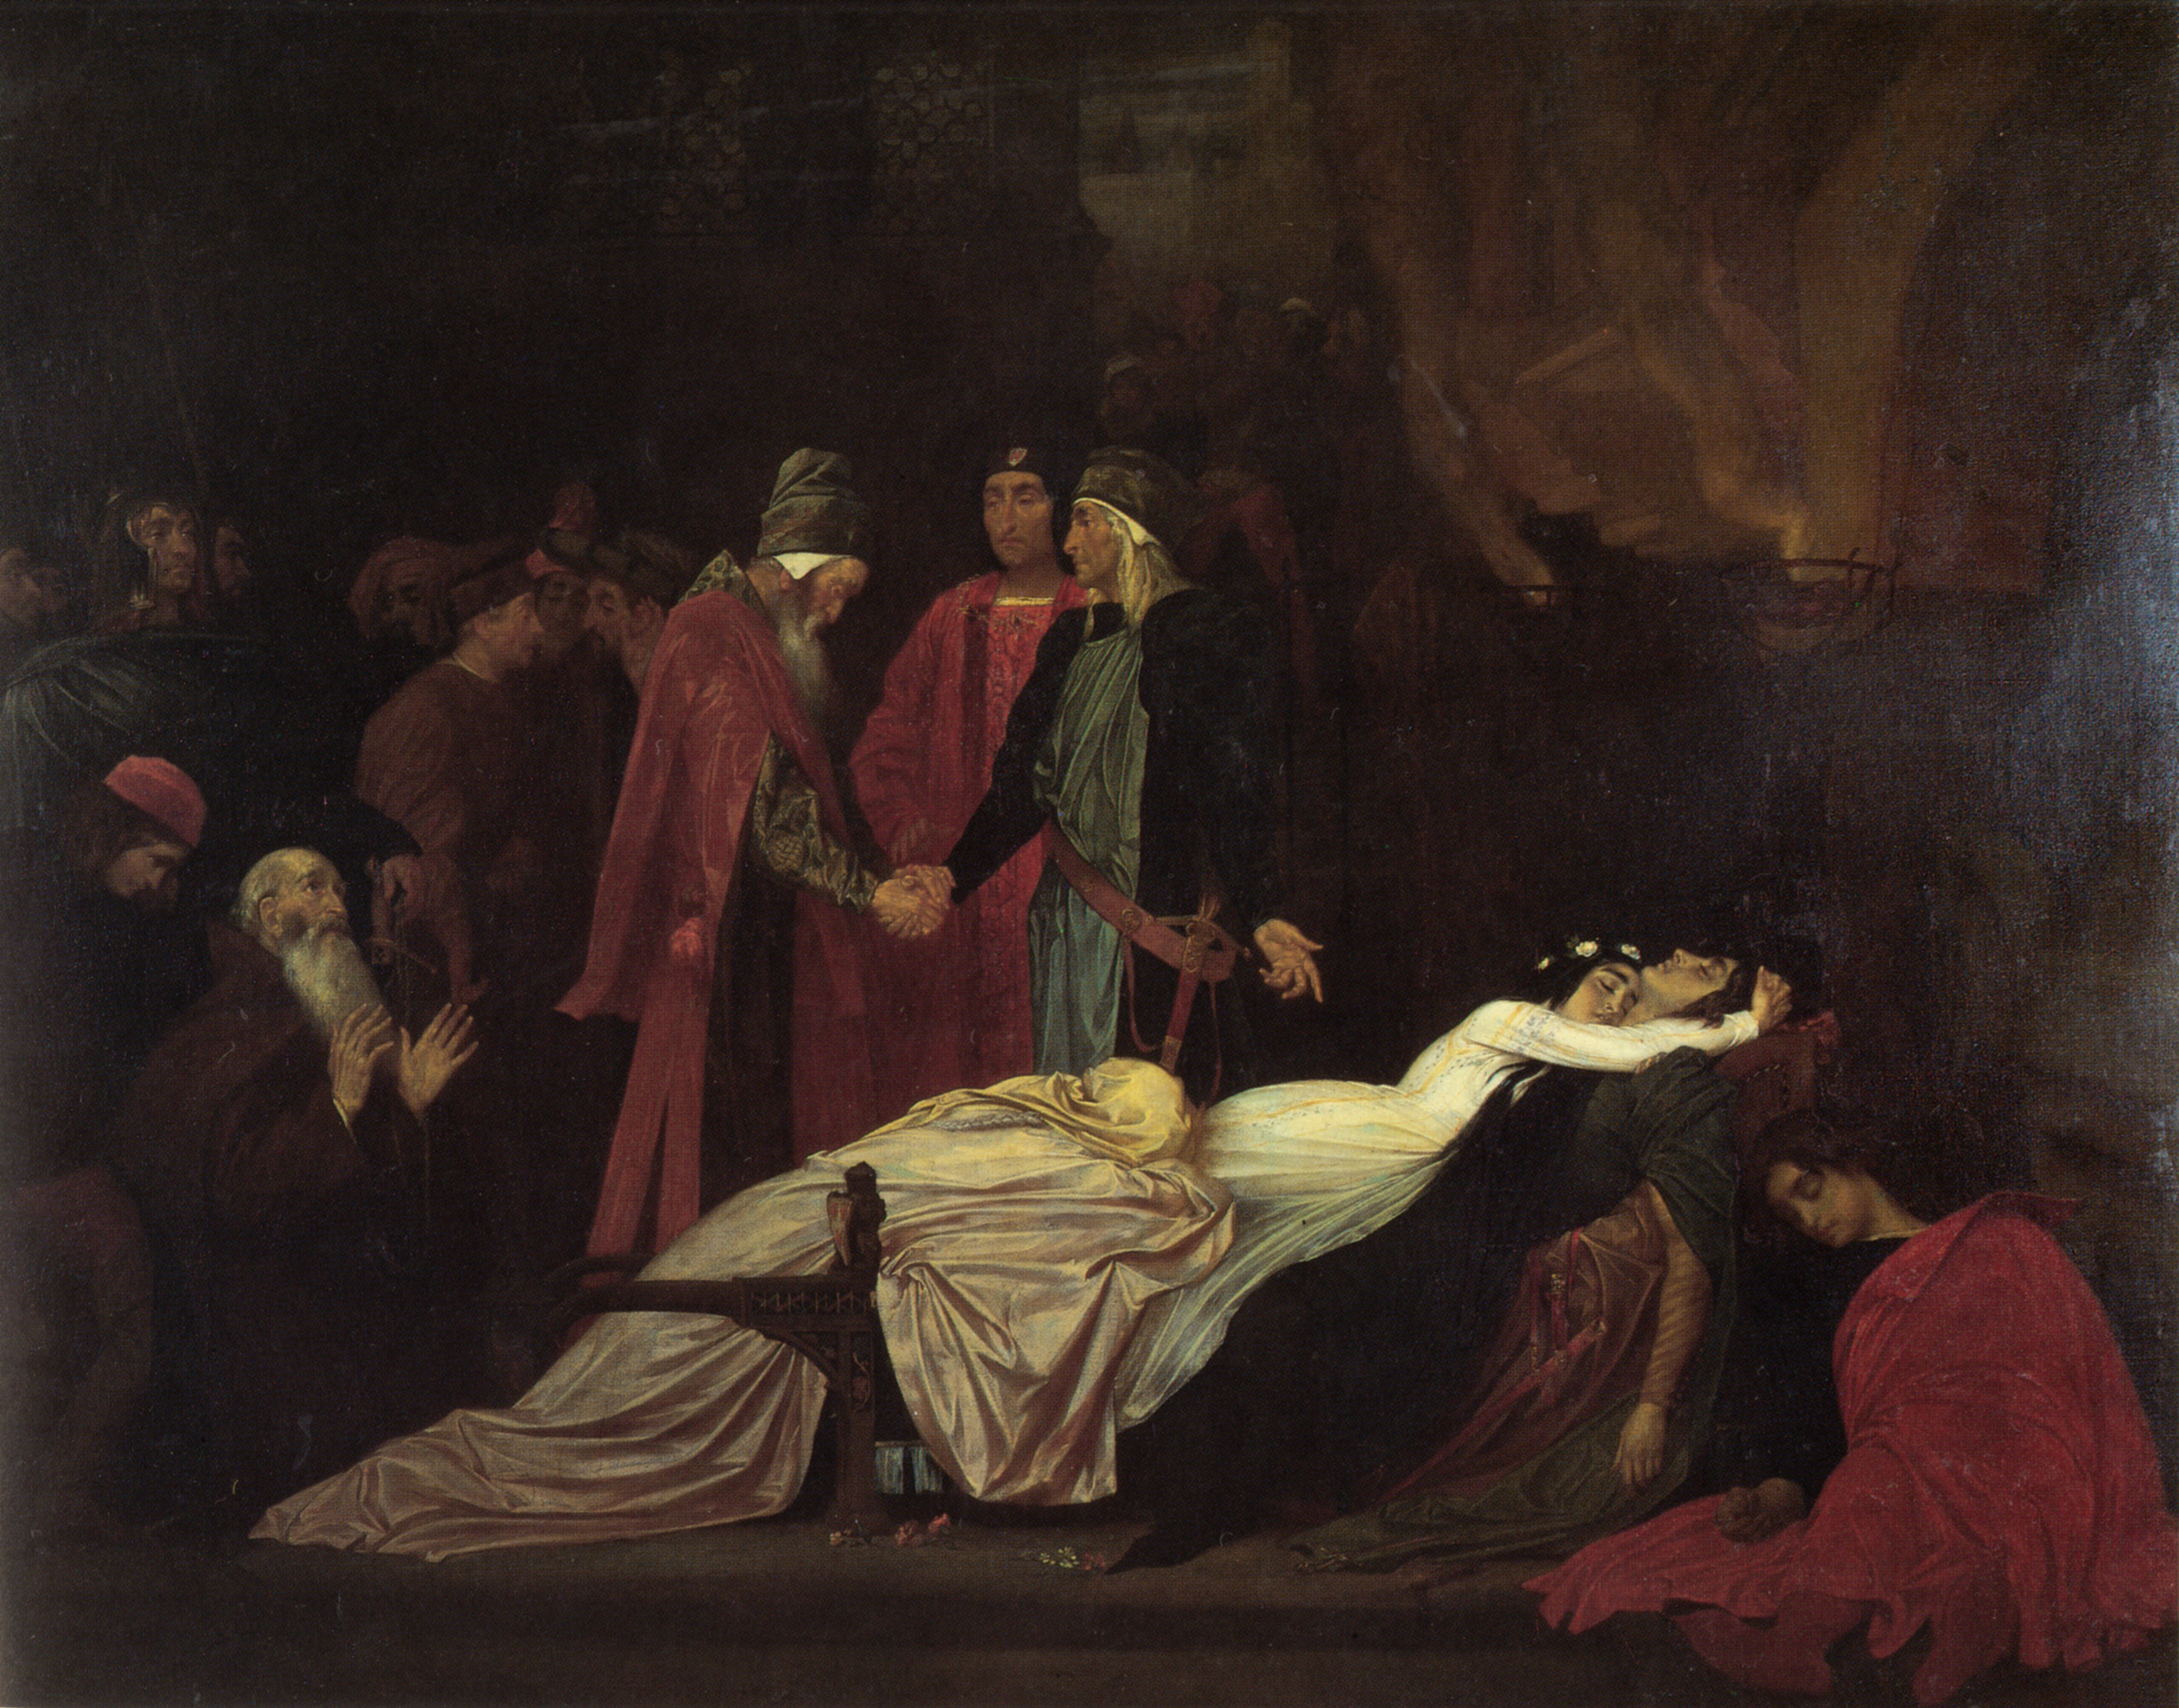 The Reconciliation of the Montagues and the Capulets over the Dead Bodies of Romeo and Juliet by Frederic Leighton